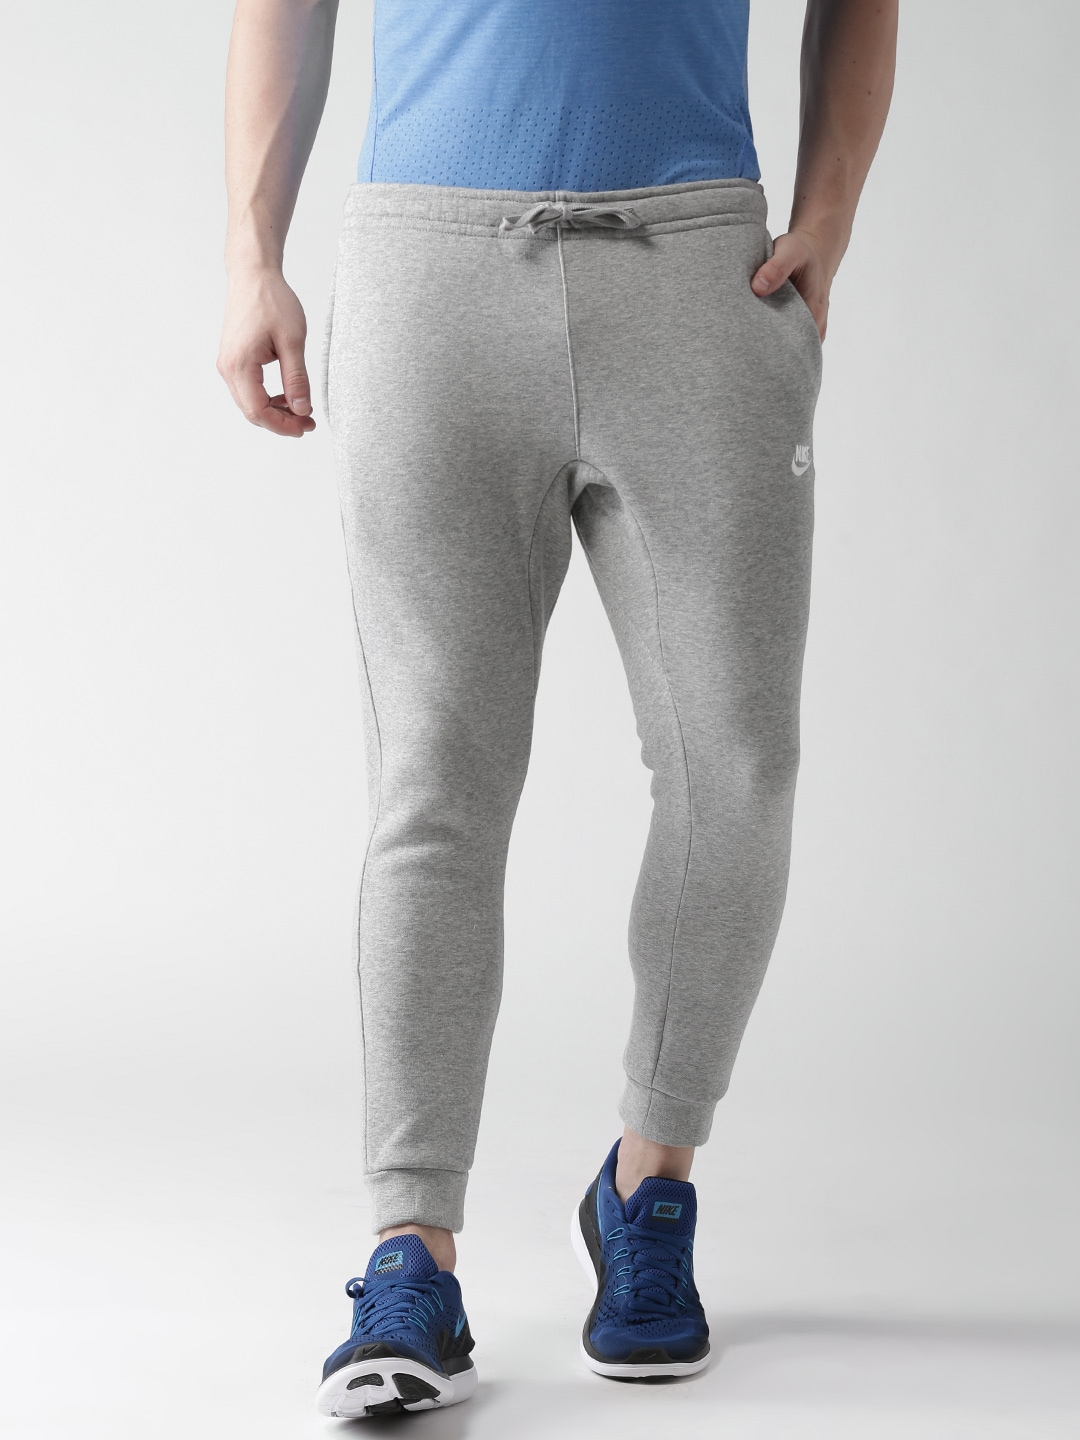 1a68fdc578a4 Nike Men Track Pants - Buy Nike Men Track Pants online in India